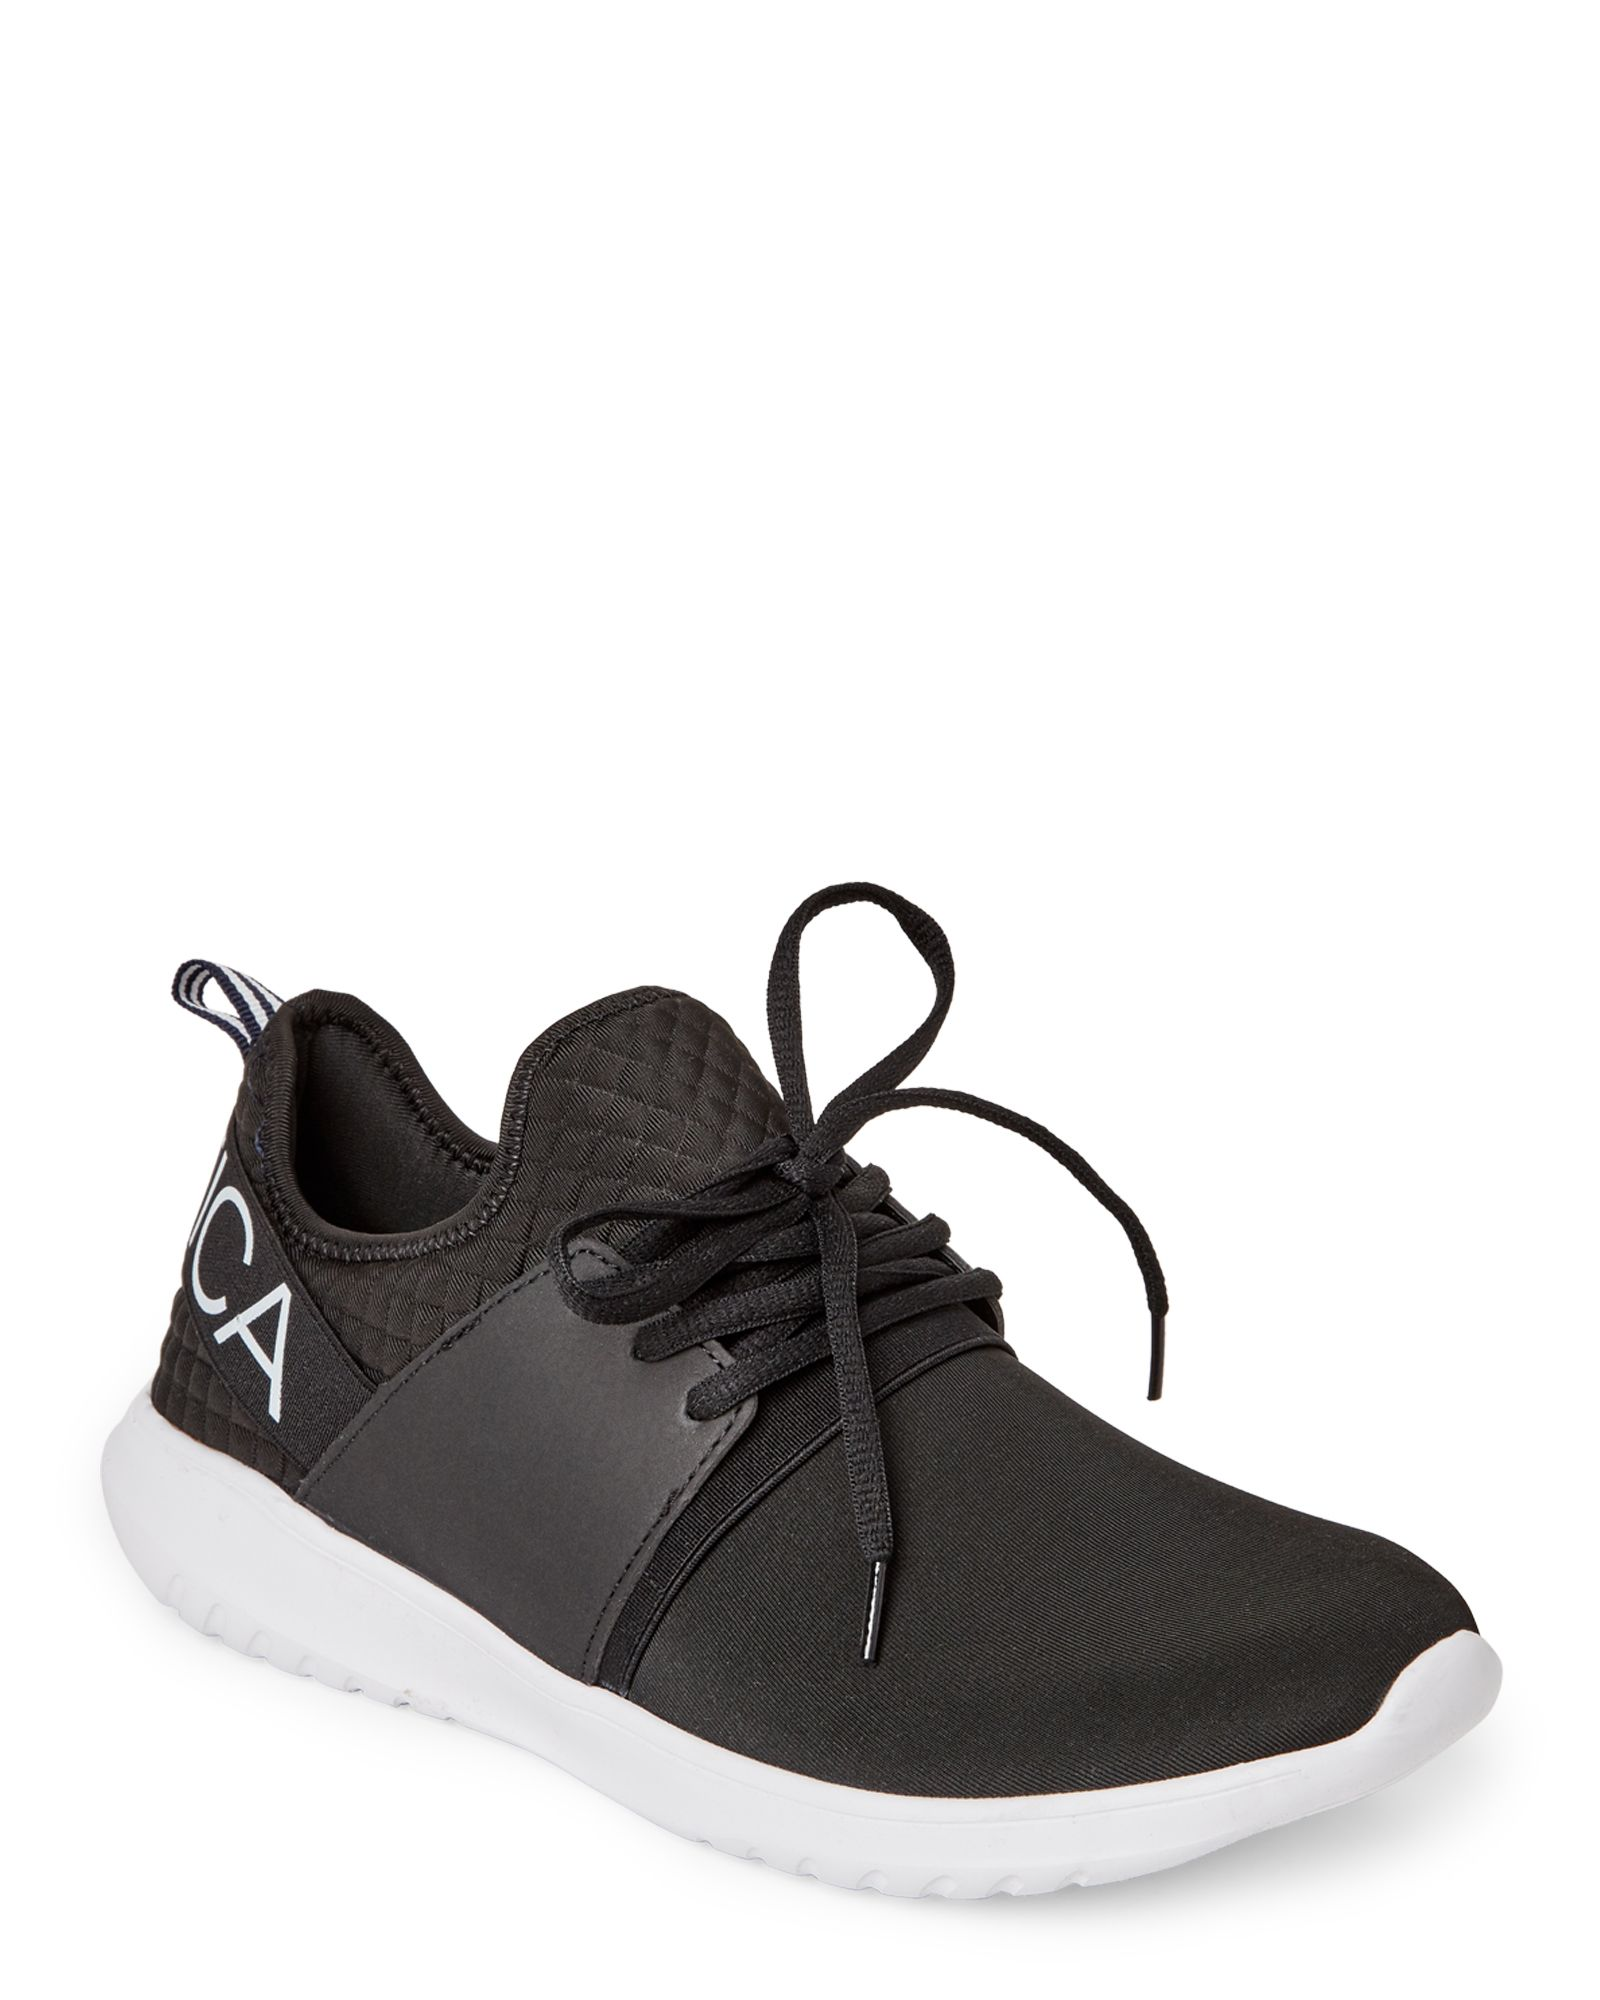 save off 83db7 8c89f Nautica Black Kappil Jogger Sneakers